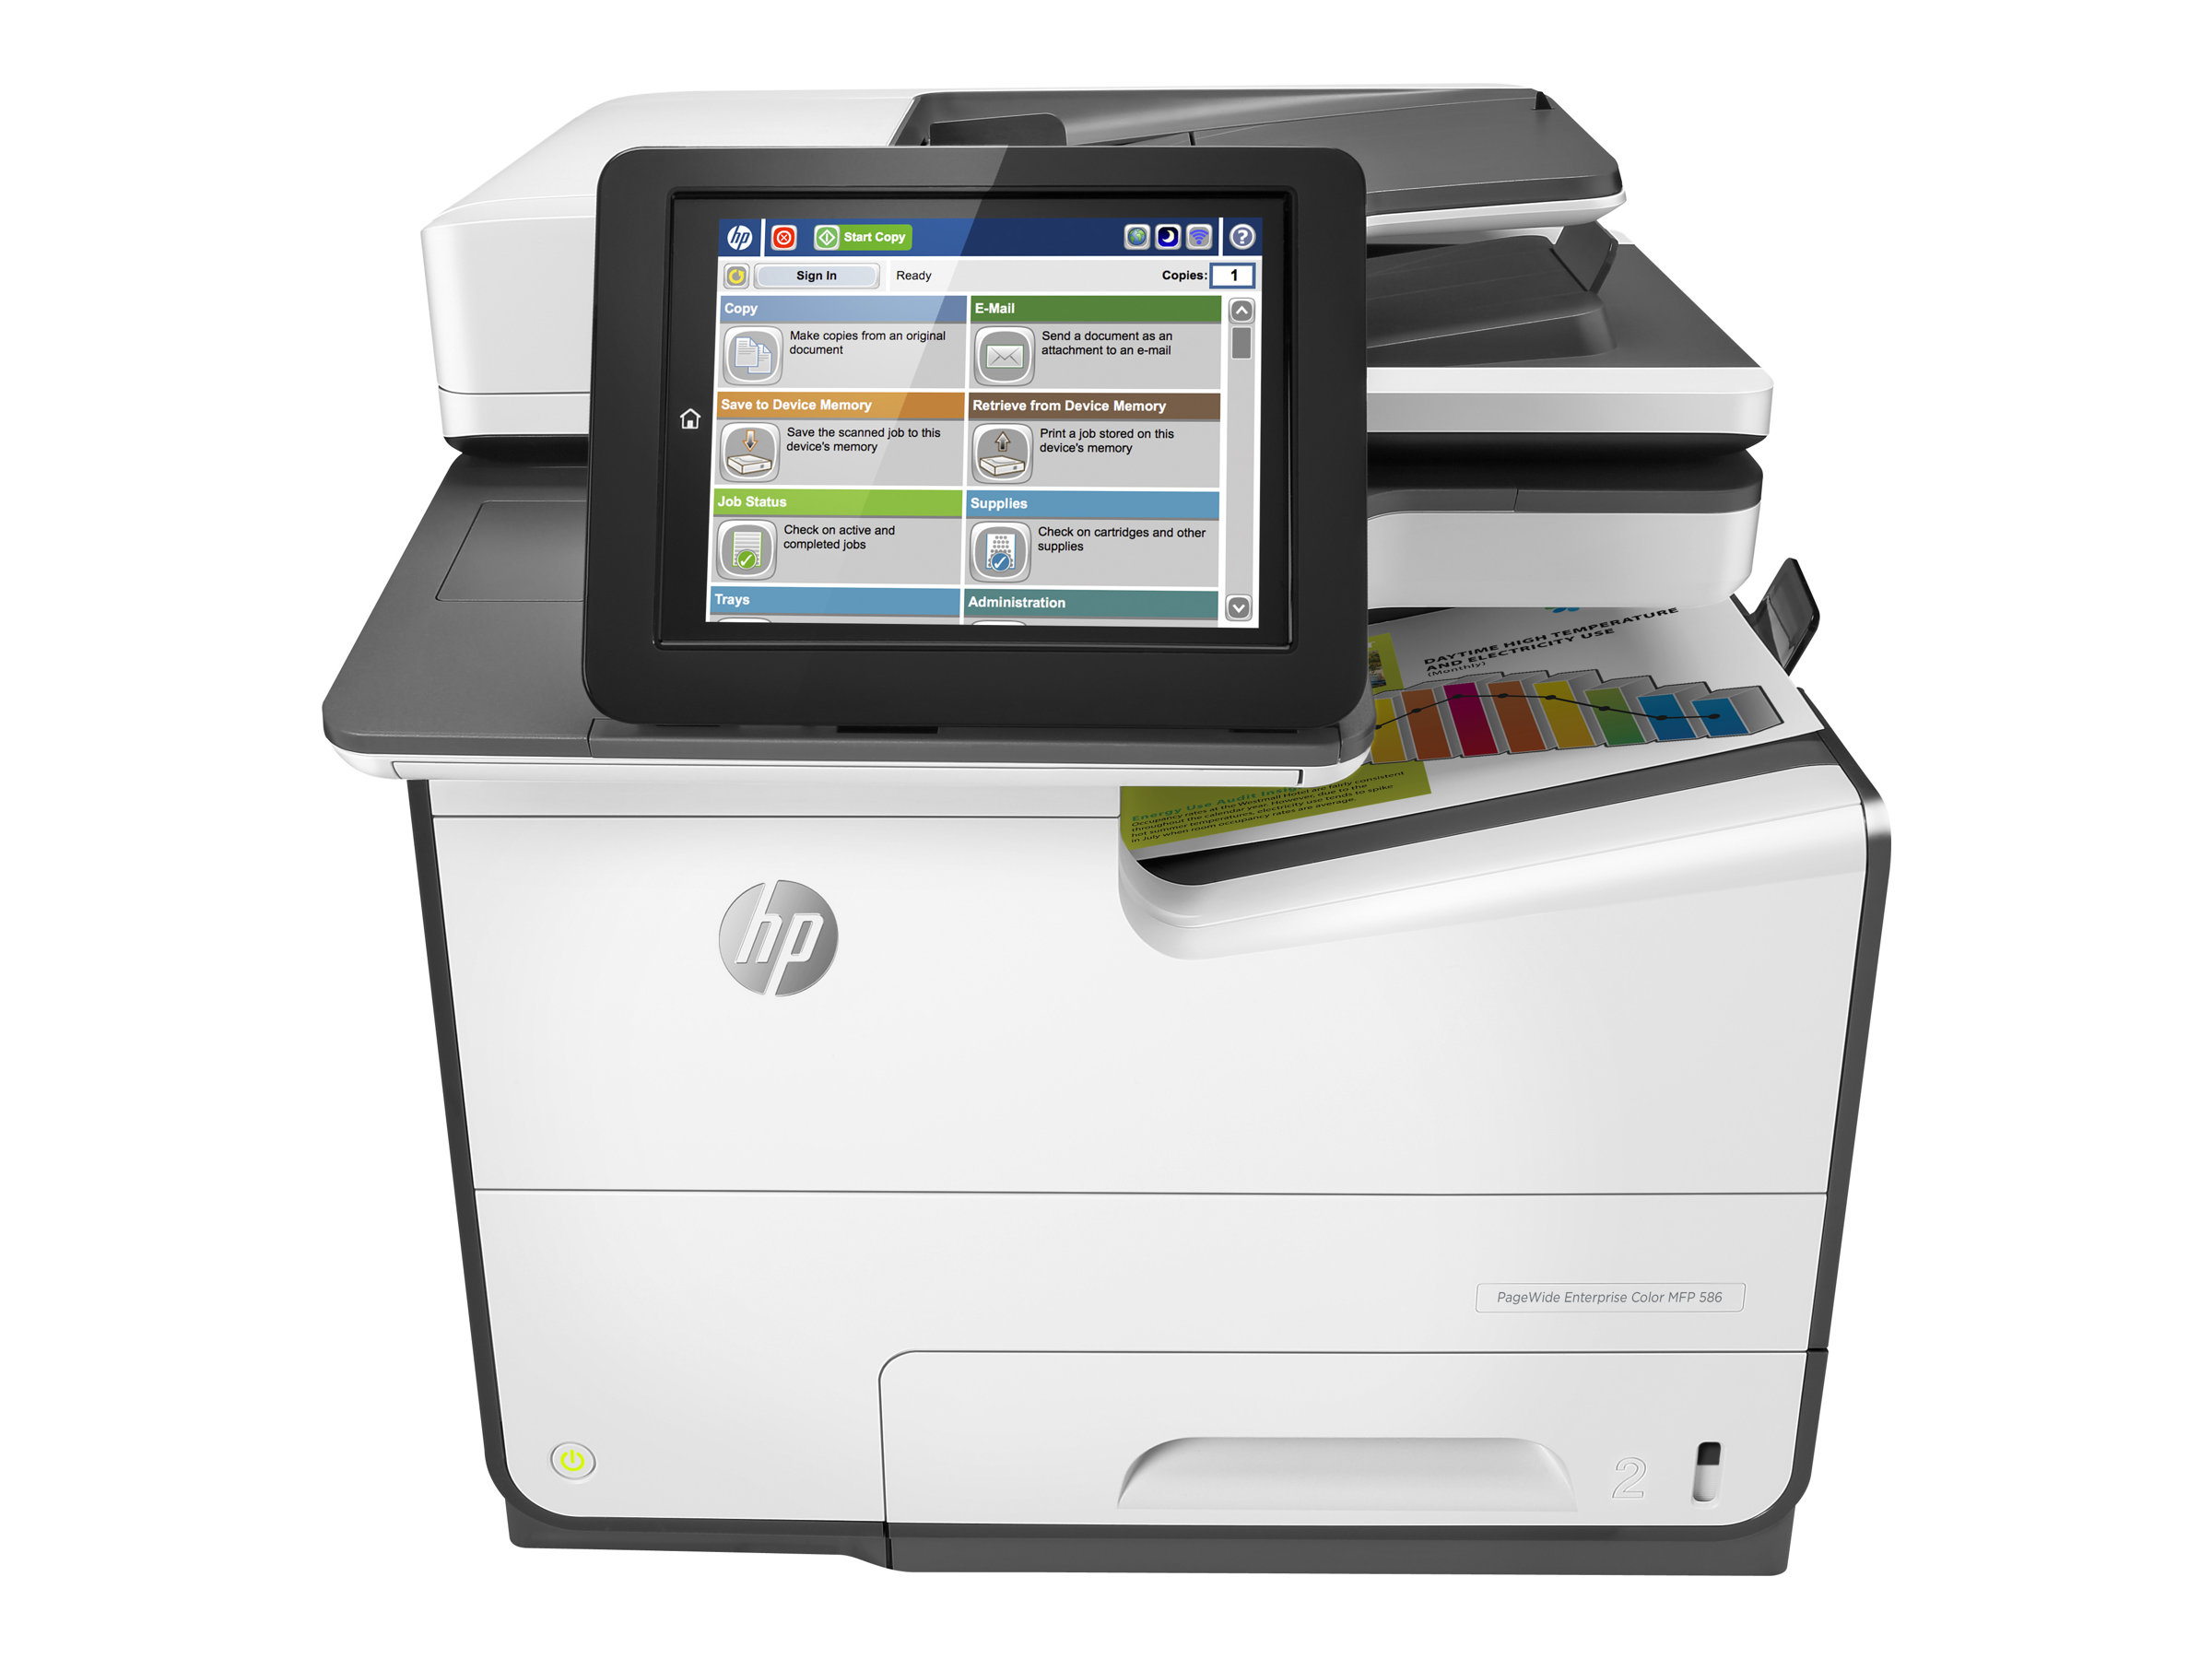 HP PageWide Enterprise Color MFP 586dn - Multifunktionsdrucker - Farbe - seitenbreite Palette - A4 (210 x 297 mm), Legal (216 x 356 mm) (Original) - A4/Legal (Medien)